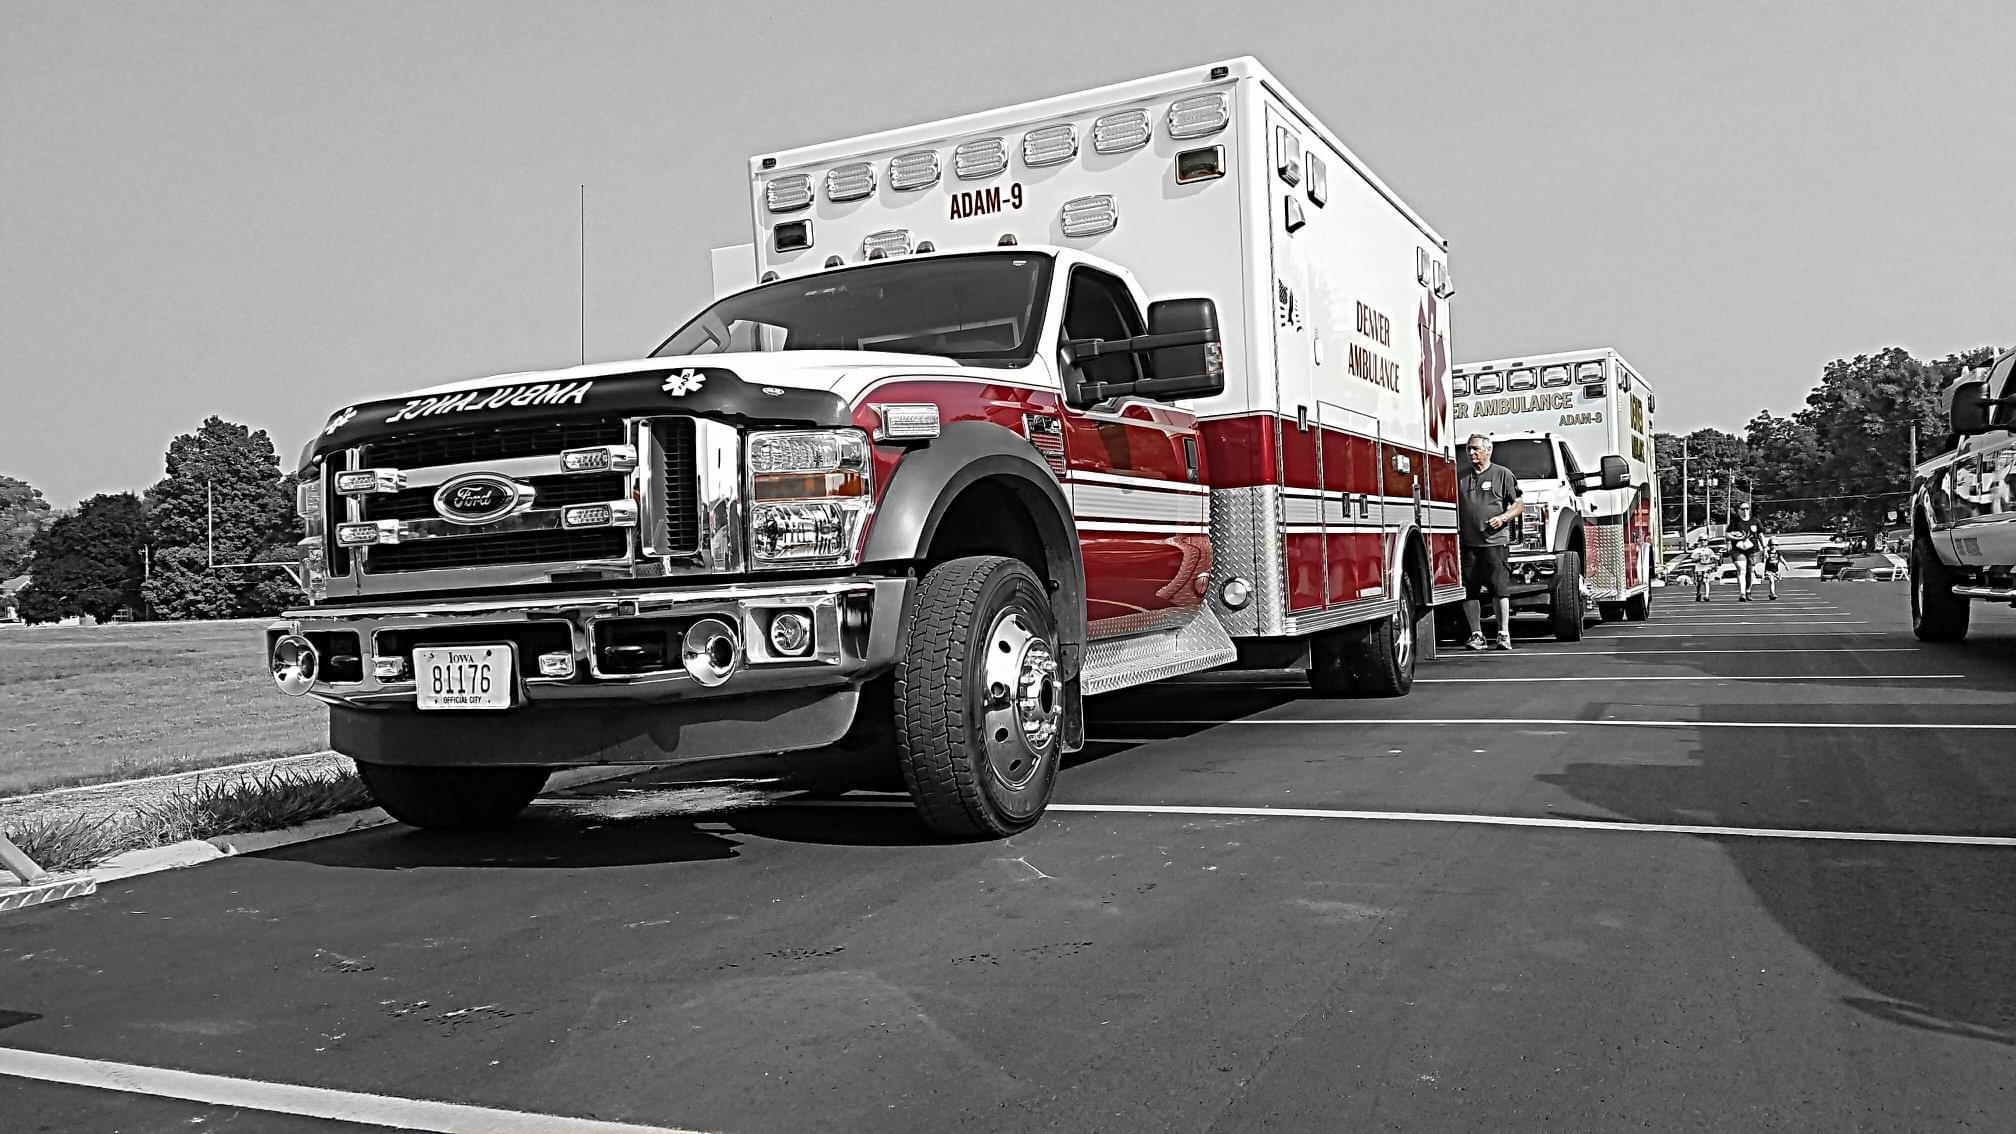 Denver Ambulance 911 Golf Outing Fundraising Event